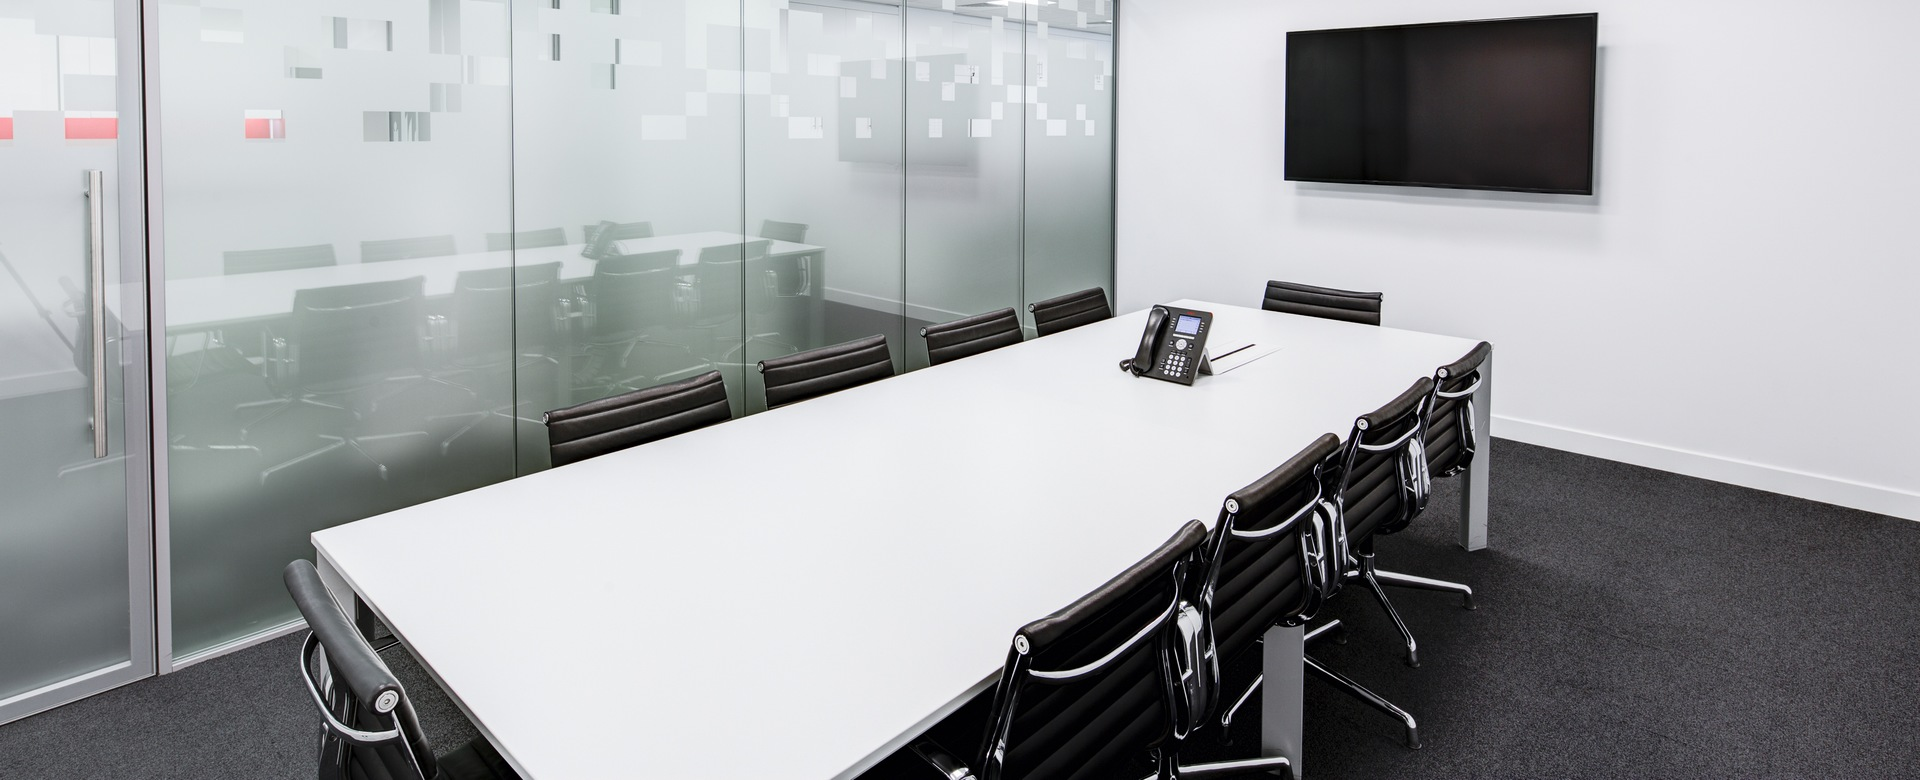 meeting-room-730679